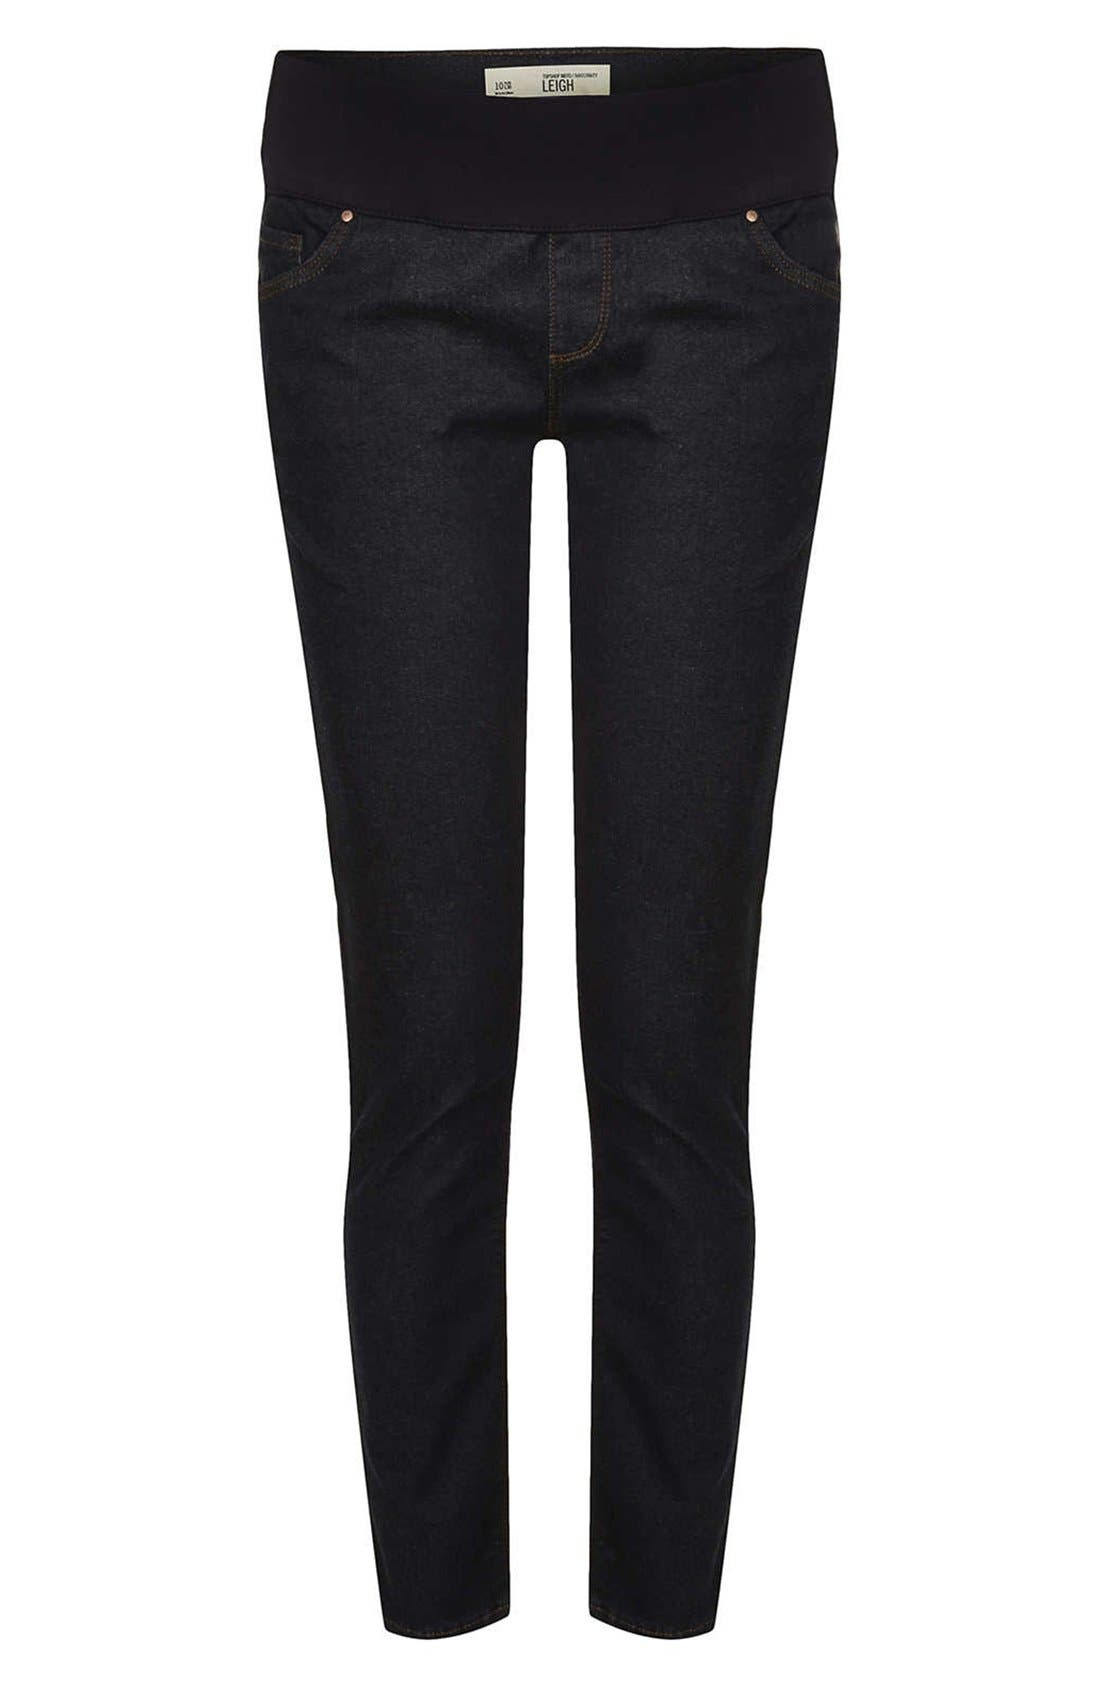 Alternate Image 3  - Topshop 'Leigh' Maternity Jeans (Indigo)